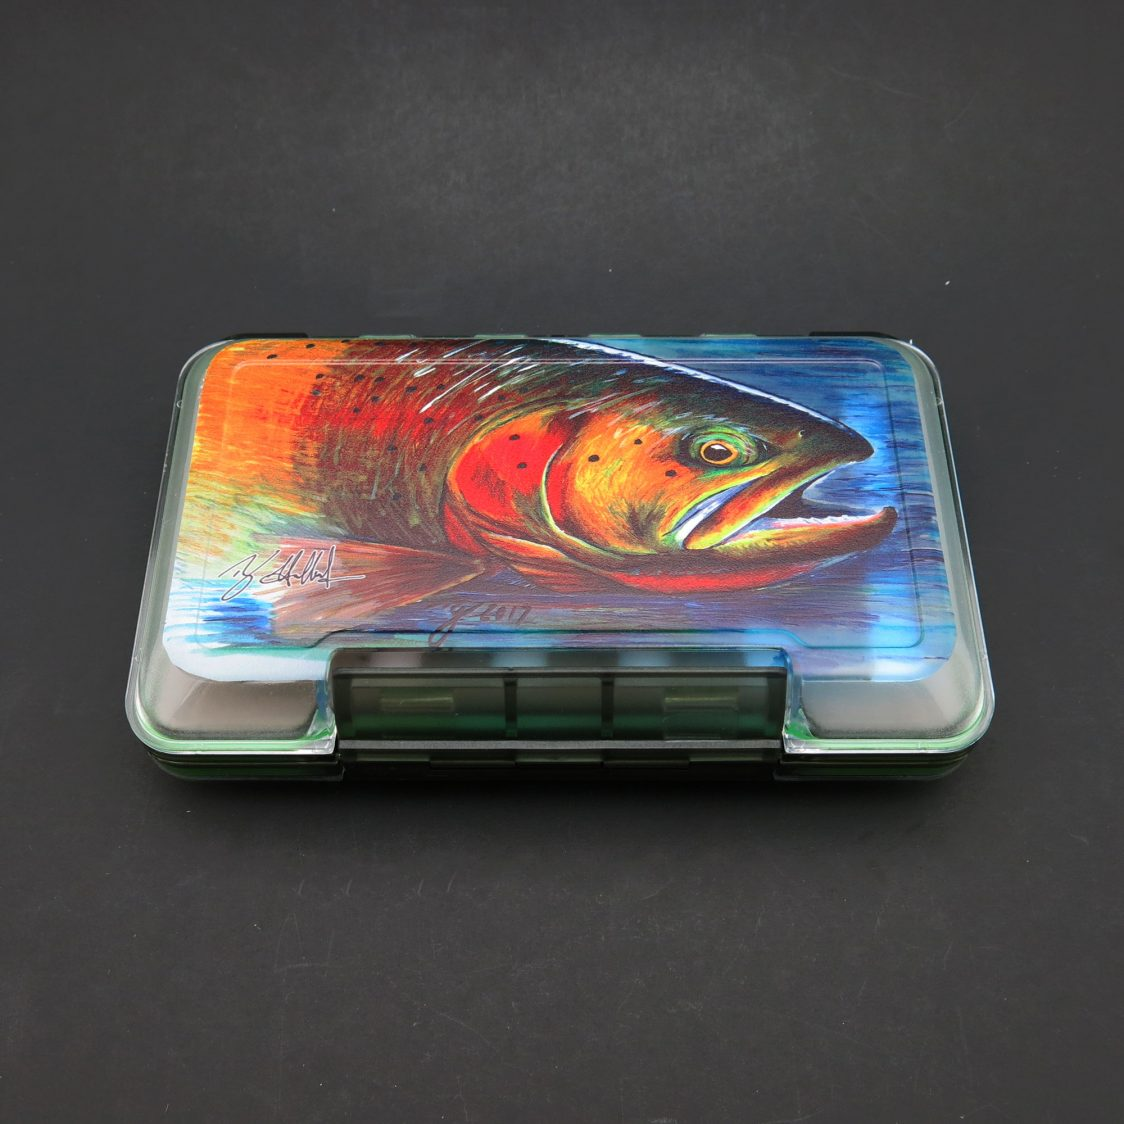 MFC Artist Series Waterproof Fly Box - Hallock's Cutthroat Trout (Medium)